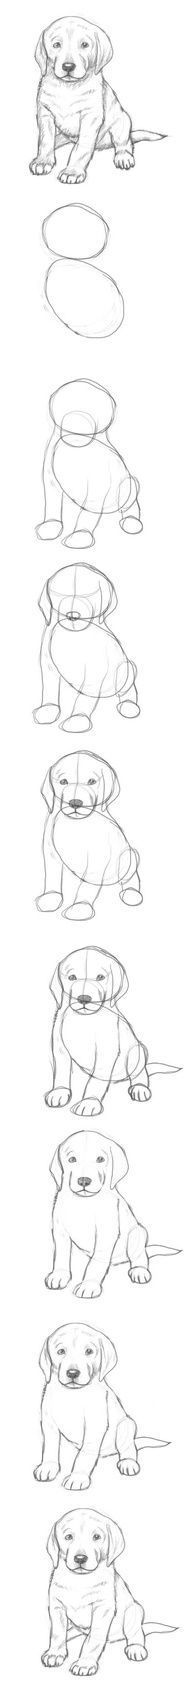 Puppies Stuff : Photo (Step Class Drawing Tutorials)